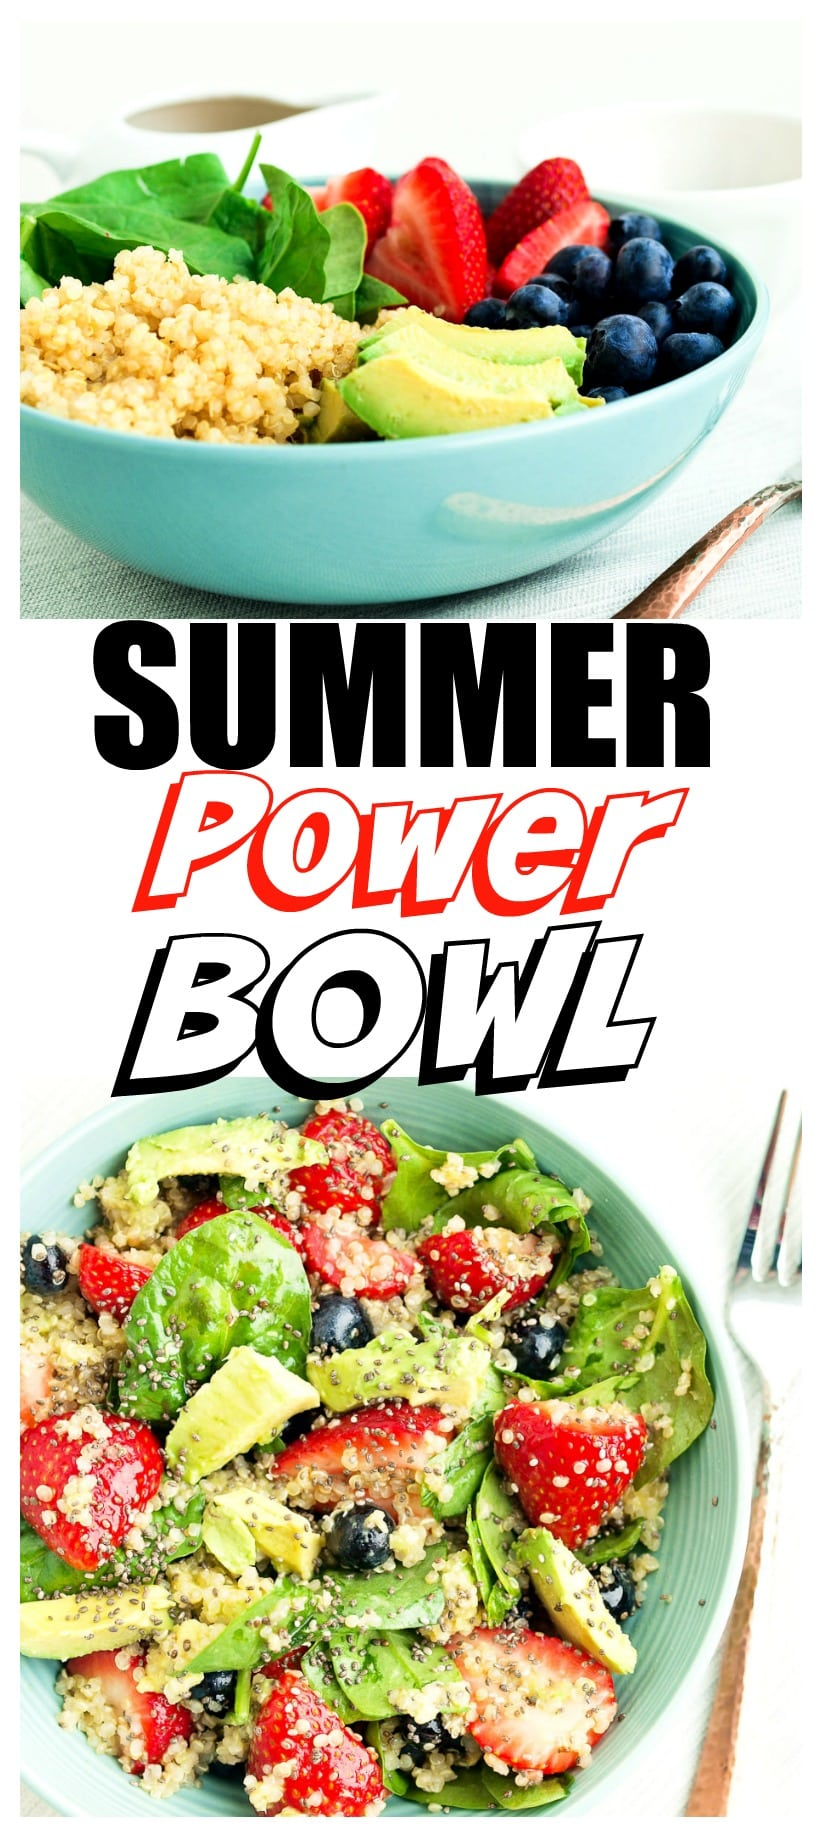 Summer Power Bowl Recipe | healthy | quinoa | gluten-free | spinach | strawberries | blueberries | salad